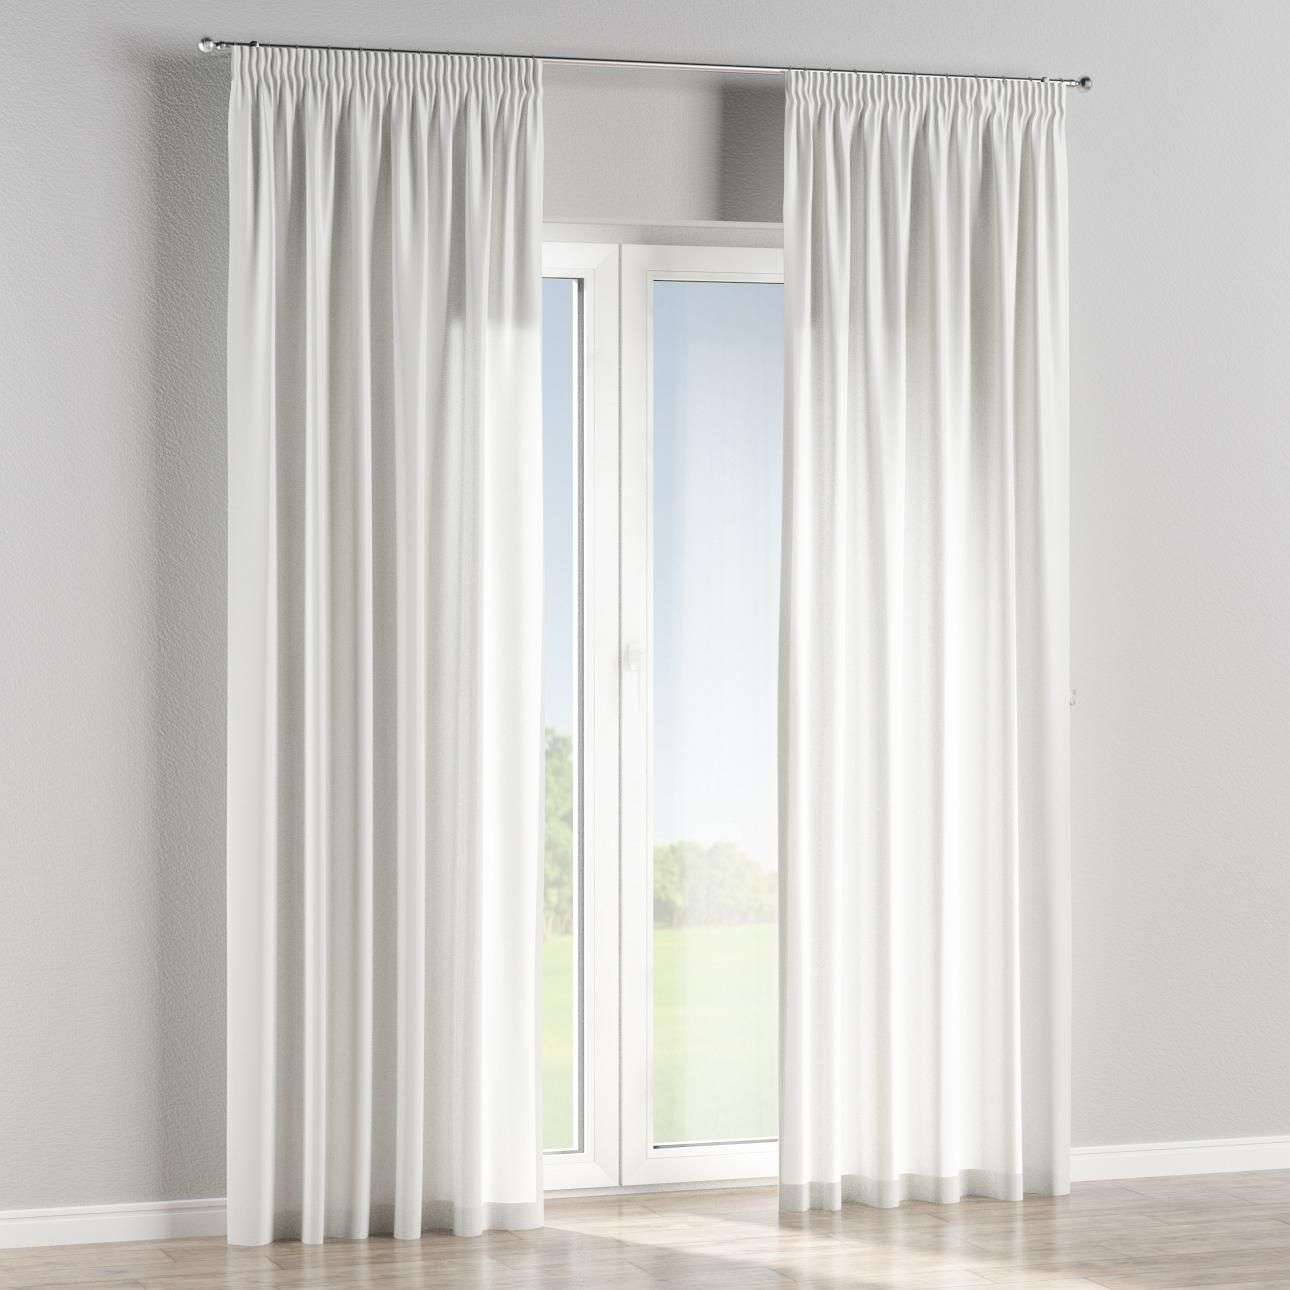 Pencil pleat lined curtains in collection Arcana, fabric: 104-02